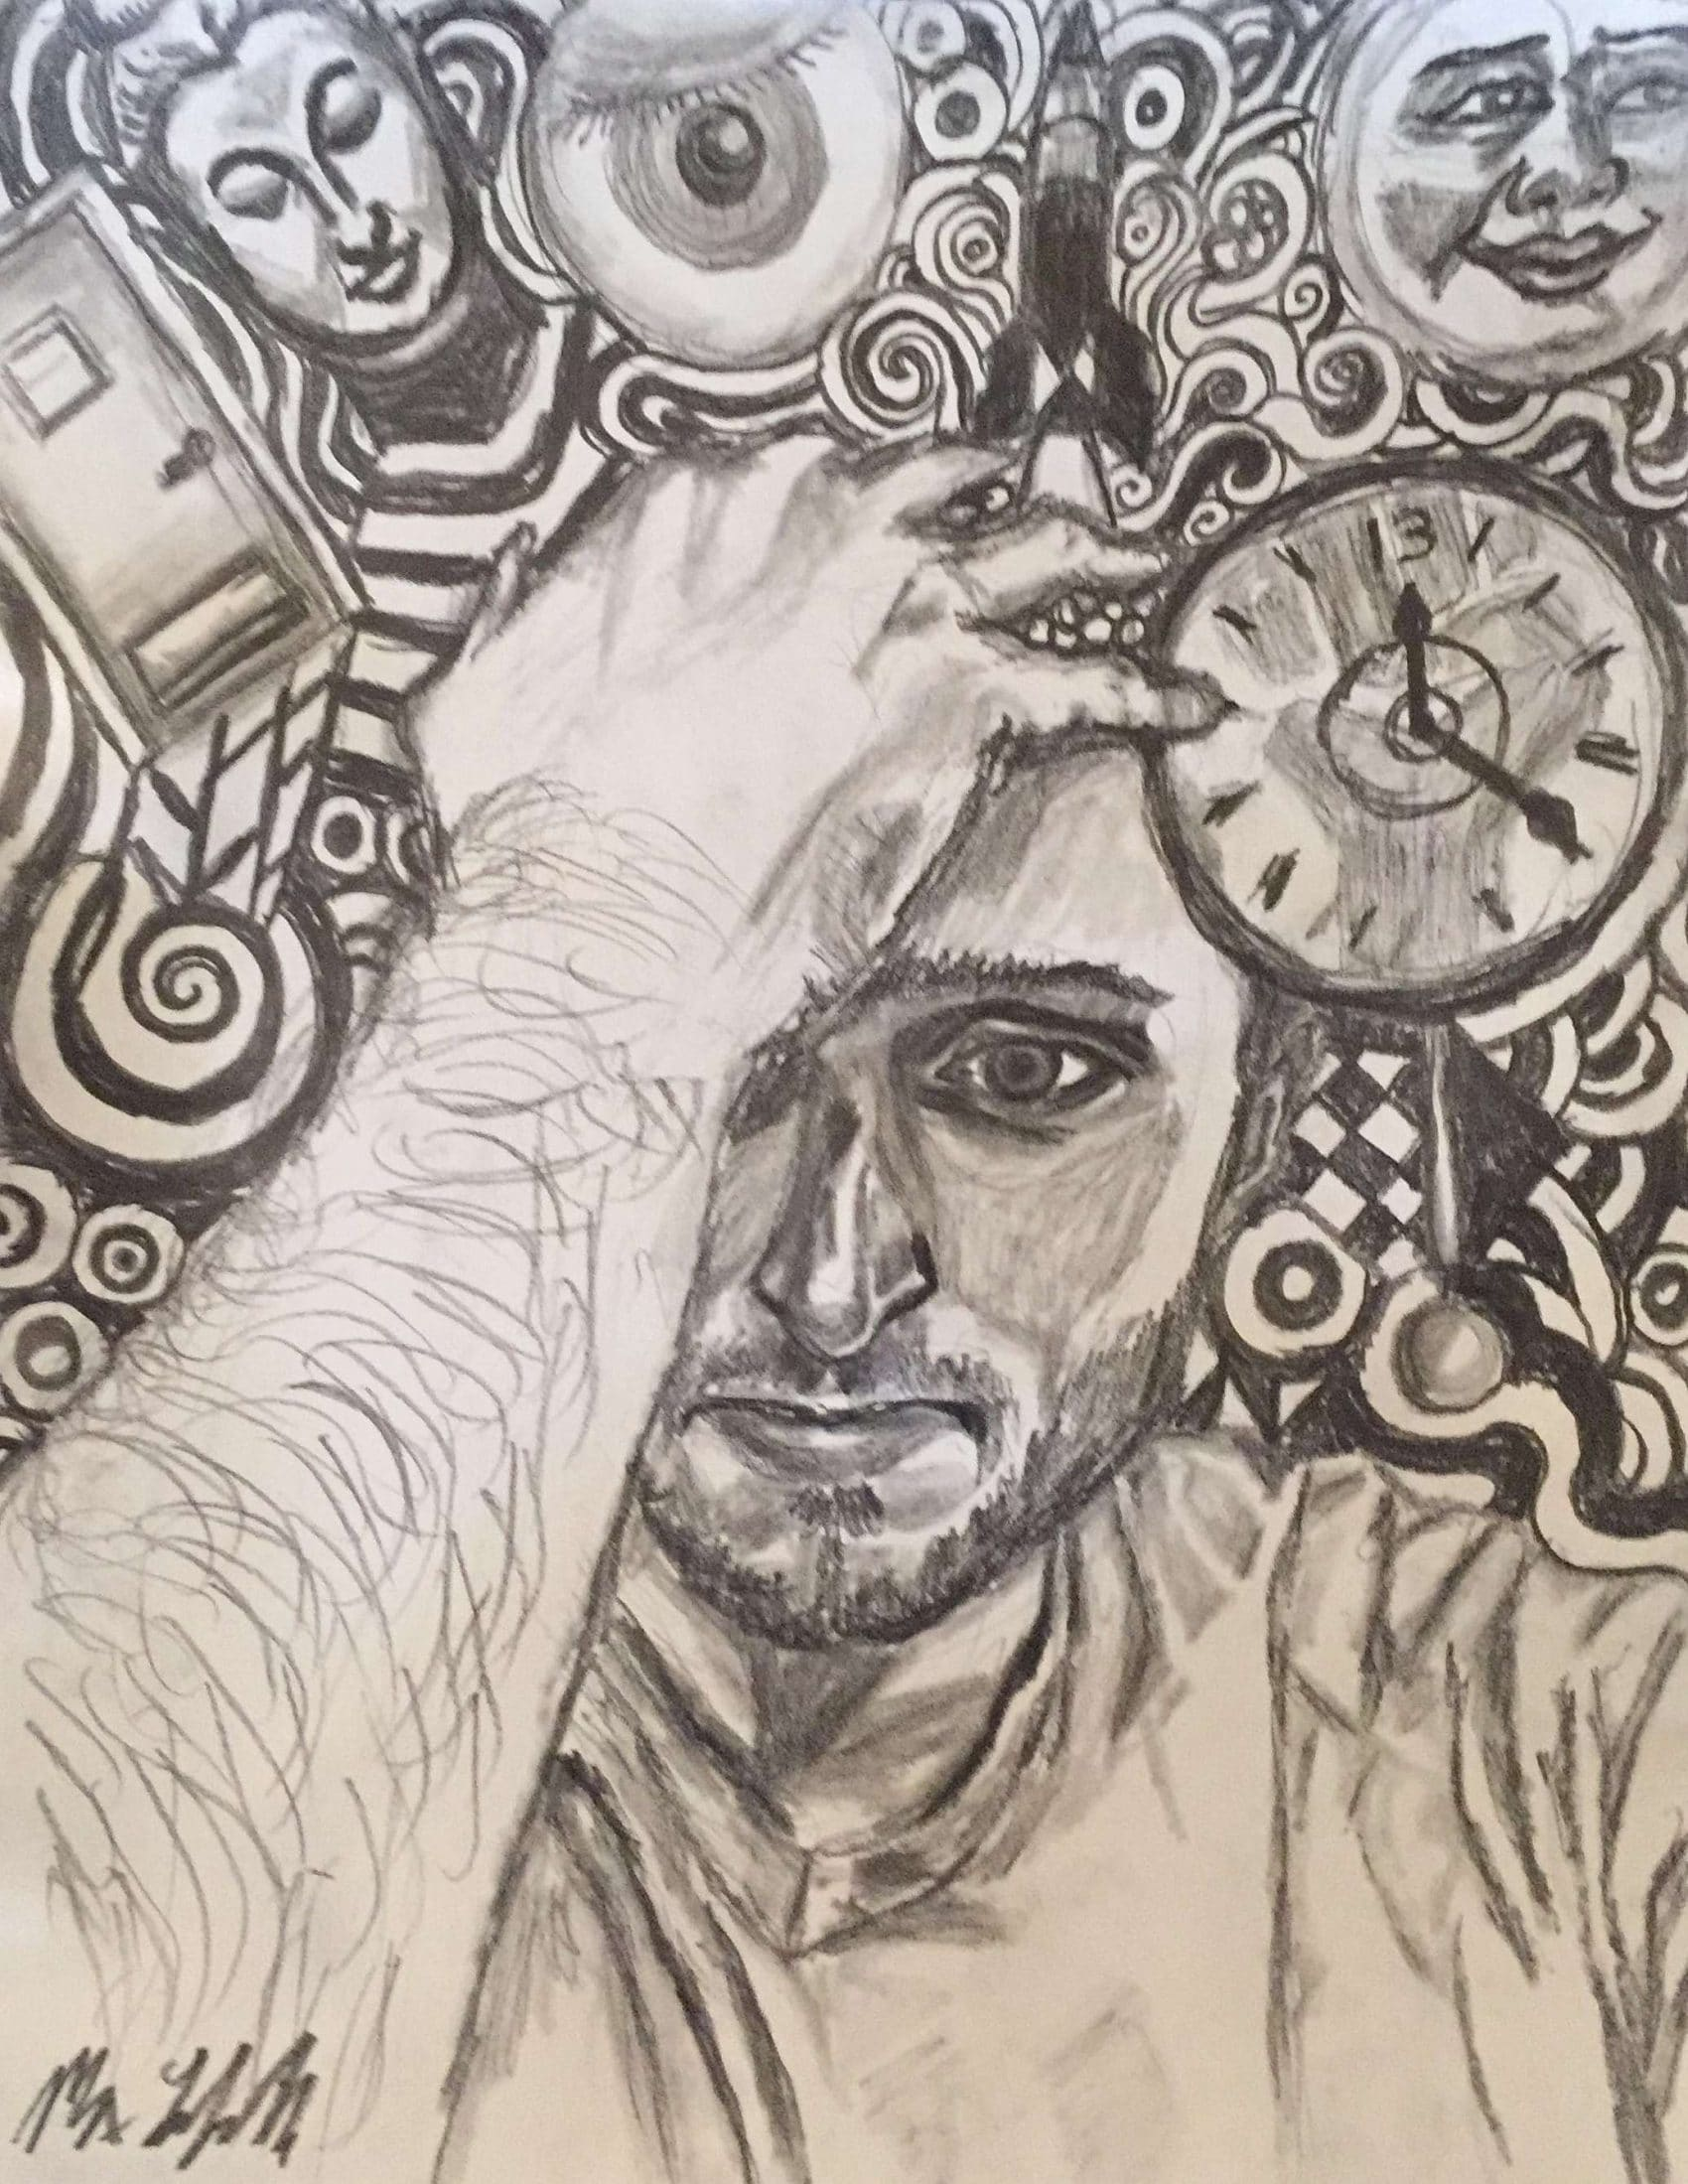 Confusion- Surrebral. Max's drawing representing his feeling confused for a time period.